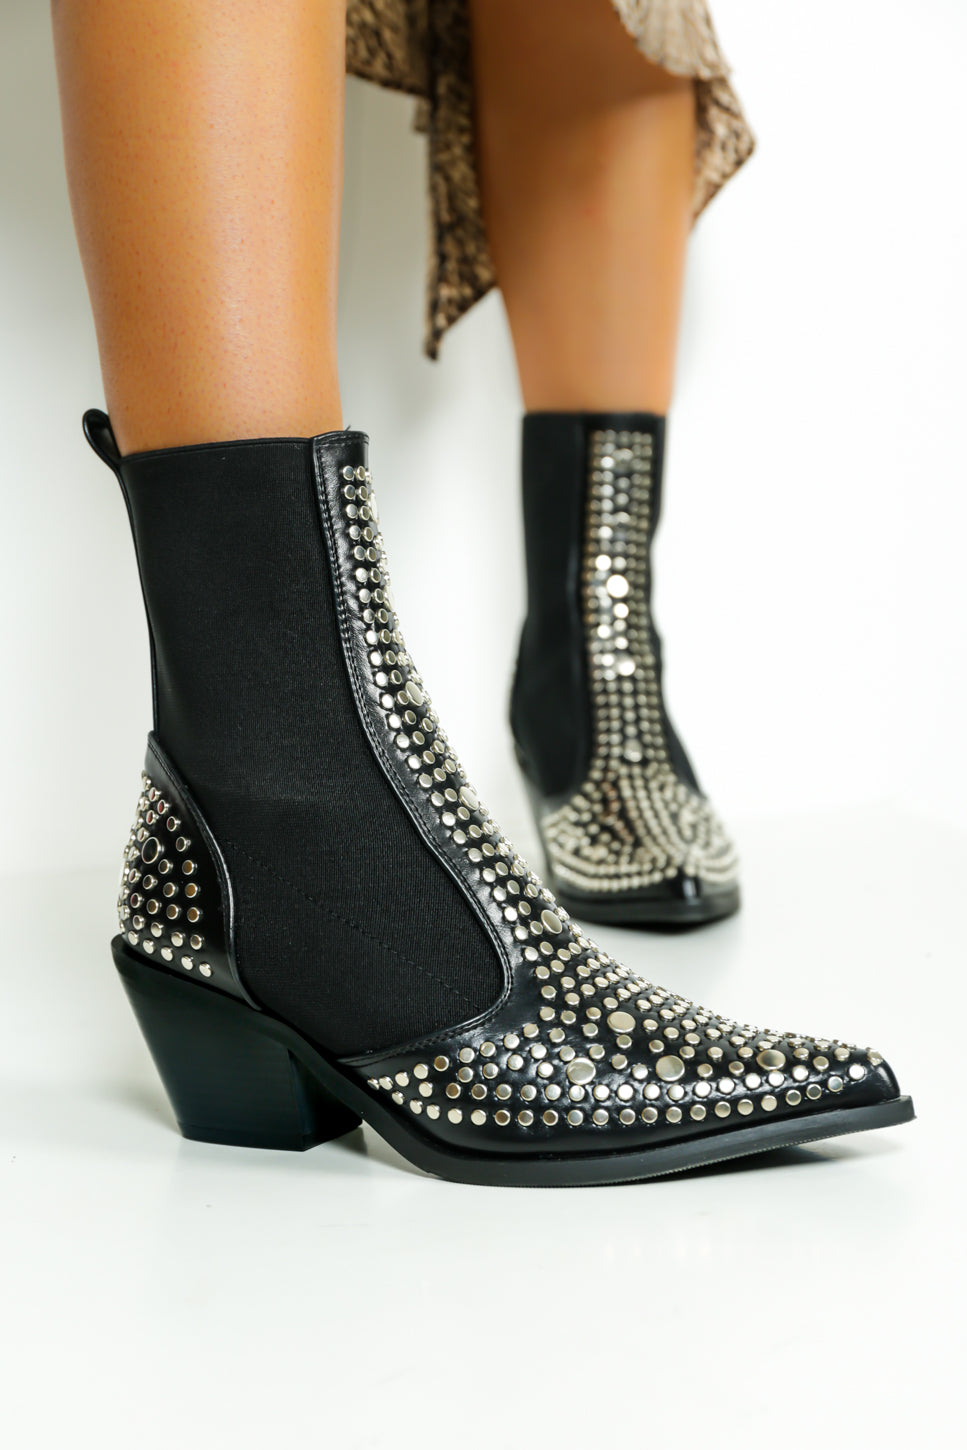 Show Down - Boots In BLACK/SILVER